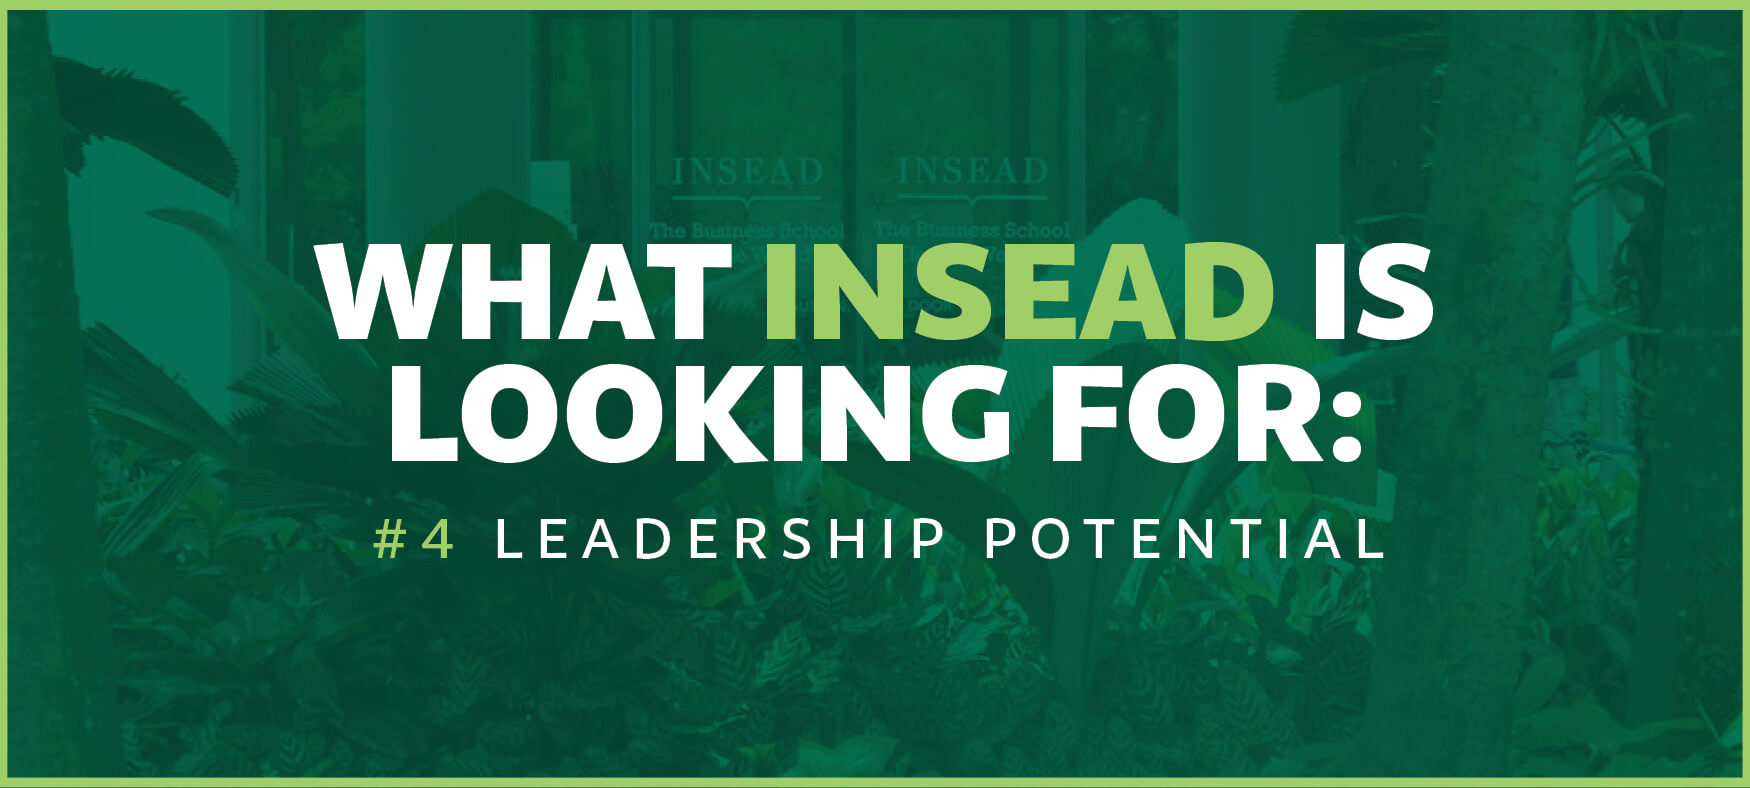 INSEAD is looking for leadership potential